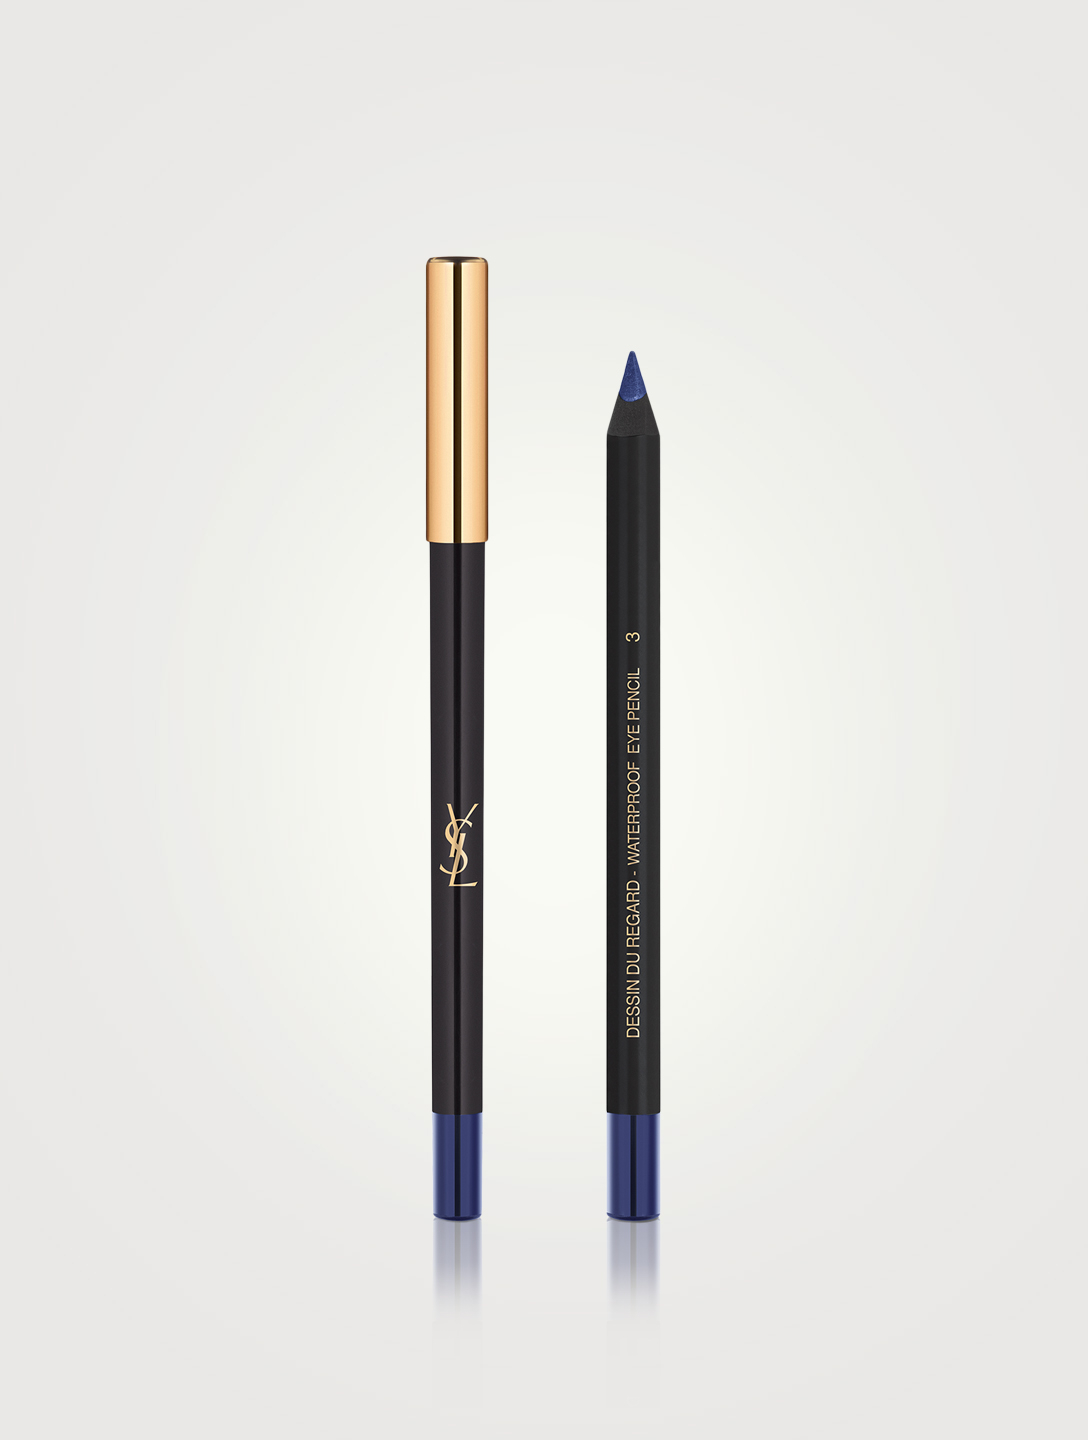 YVES SAINT LAURENT Dessin Du Regard Waterproof Eye Pencil Beauty Blue